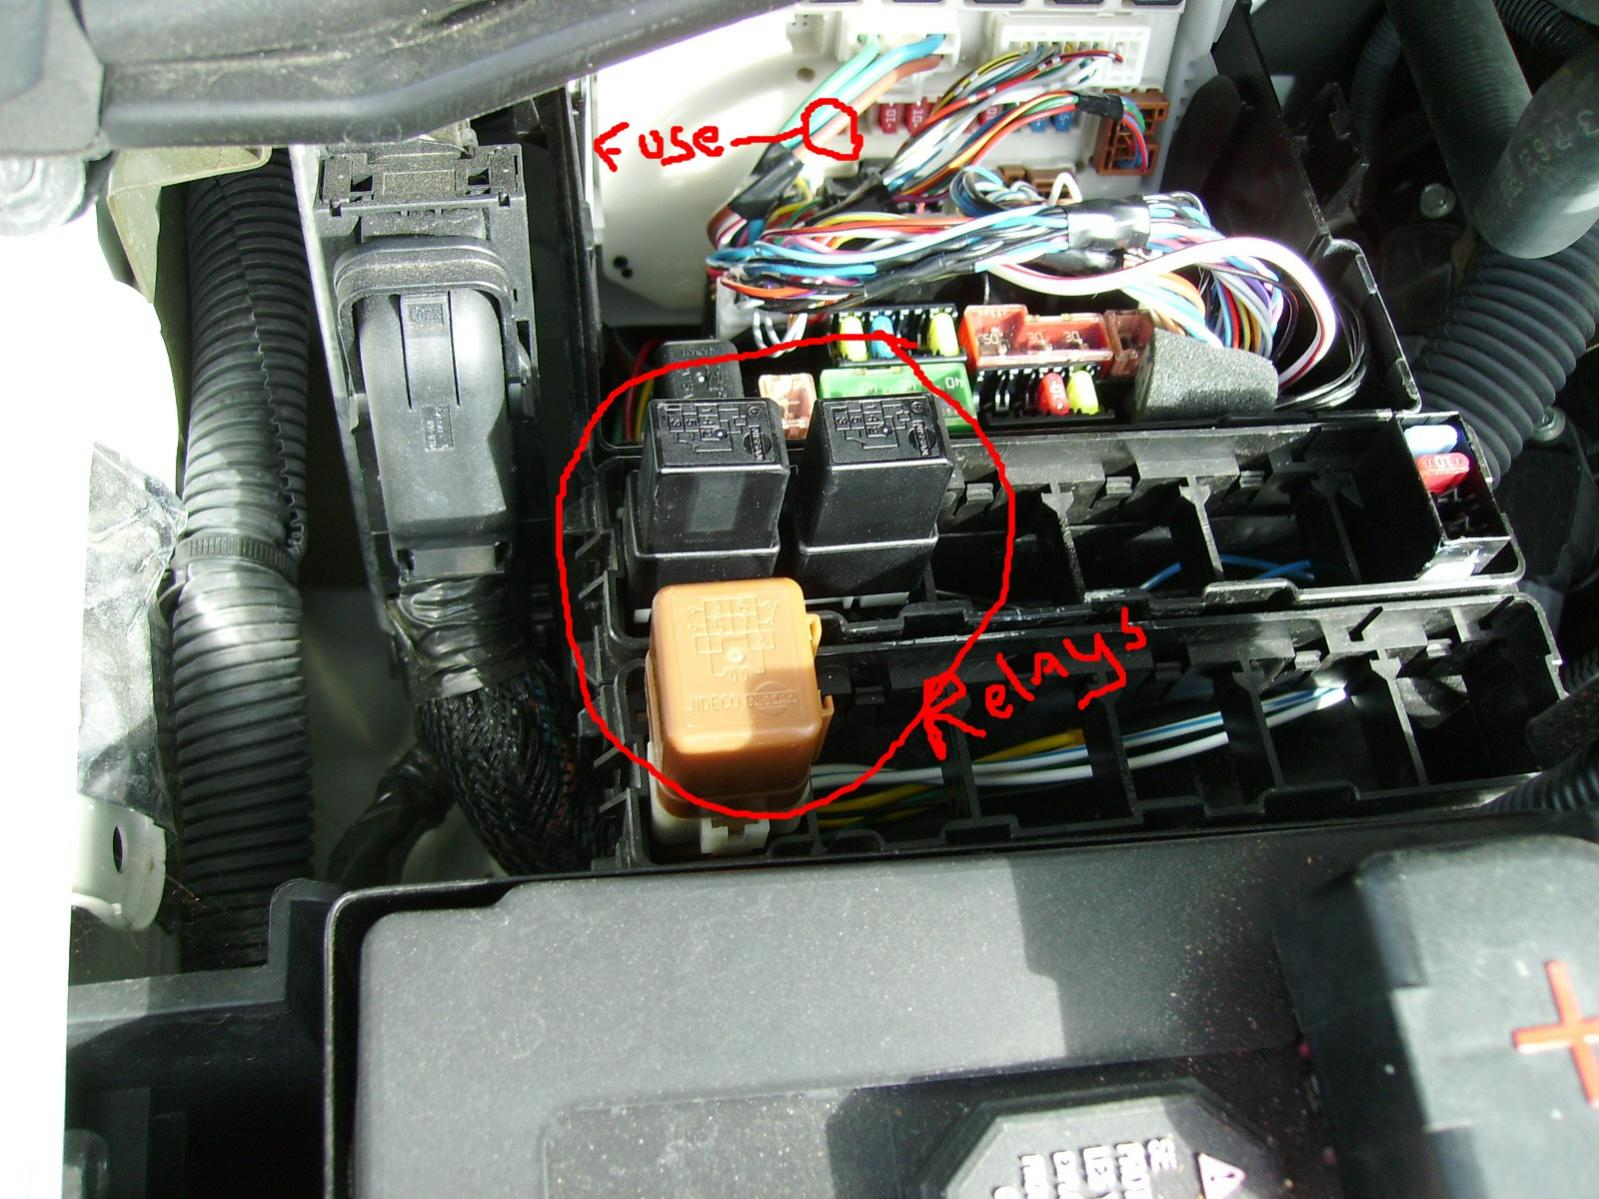 Wiring Diagram For Nissan 350z Wot Electronicswiring Trailer Lights Titan Forum 2003 Murano 2013